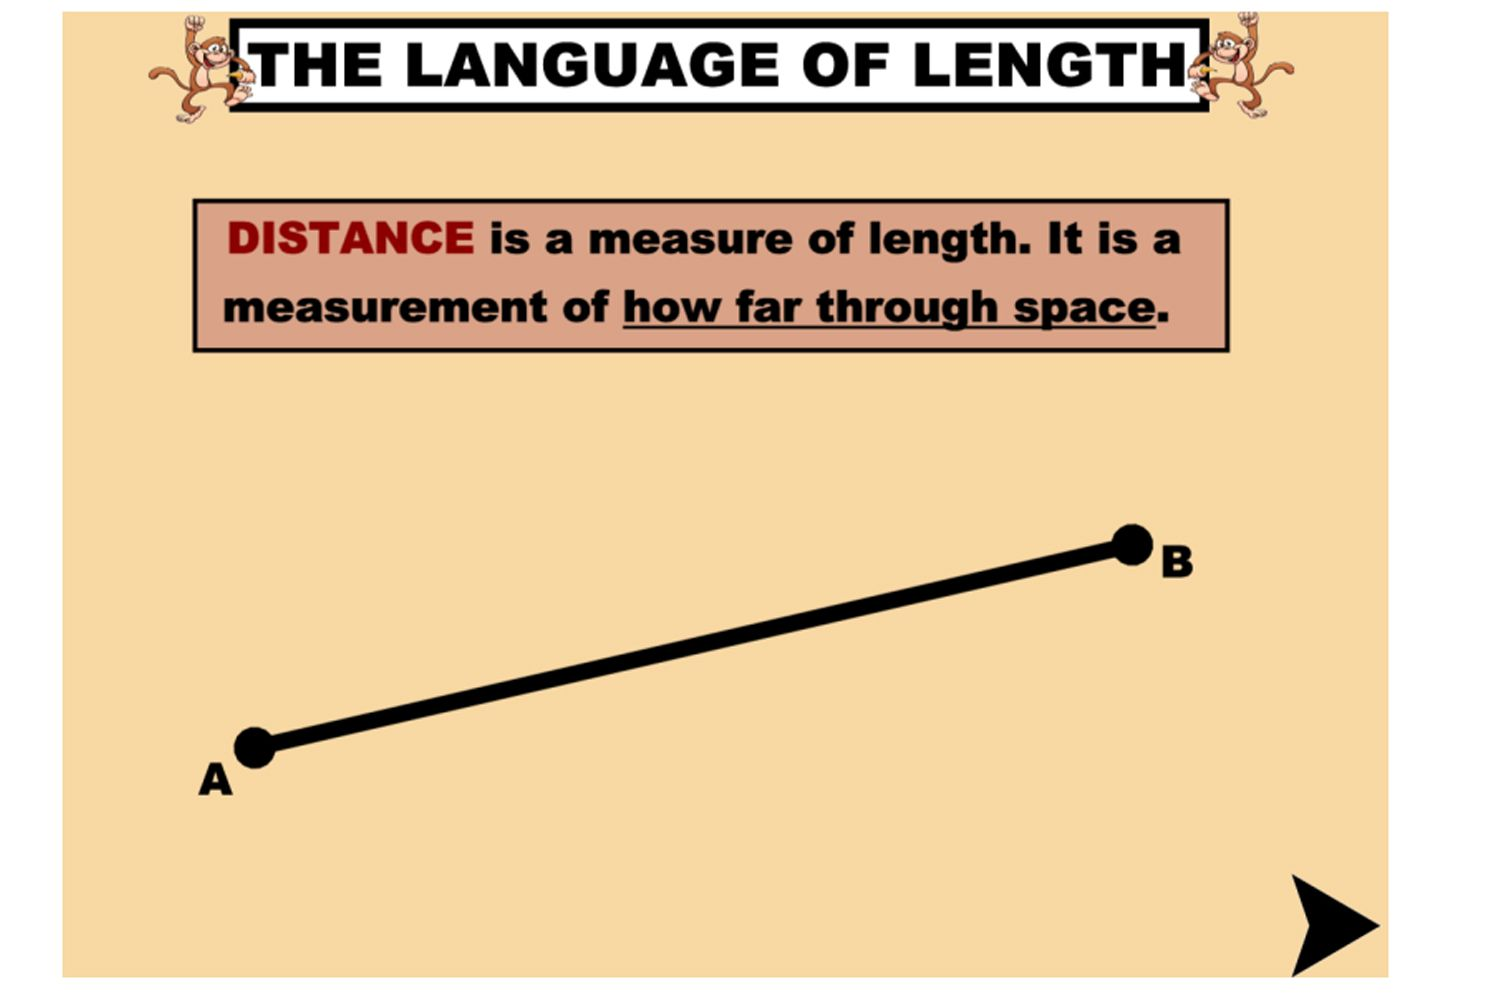 It is so important for students to become familiar with mathematical vocabulary! This wonderful IWB resource reviews the definitions of words associated with length, and then provides opportunities for students to test their knowledge in fun ways! http://interactivelessons.com.au/ http://schools.interactivelessons.com.au/